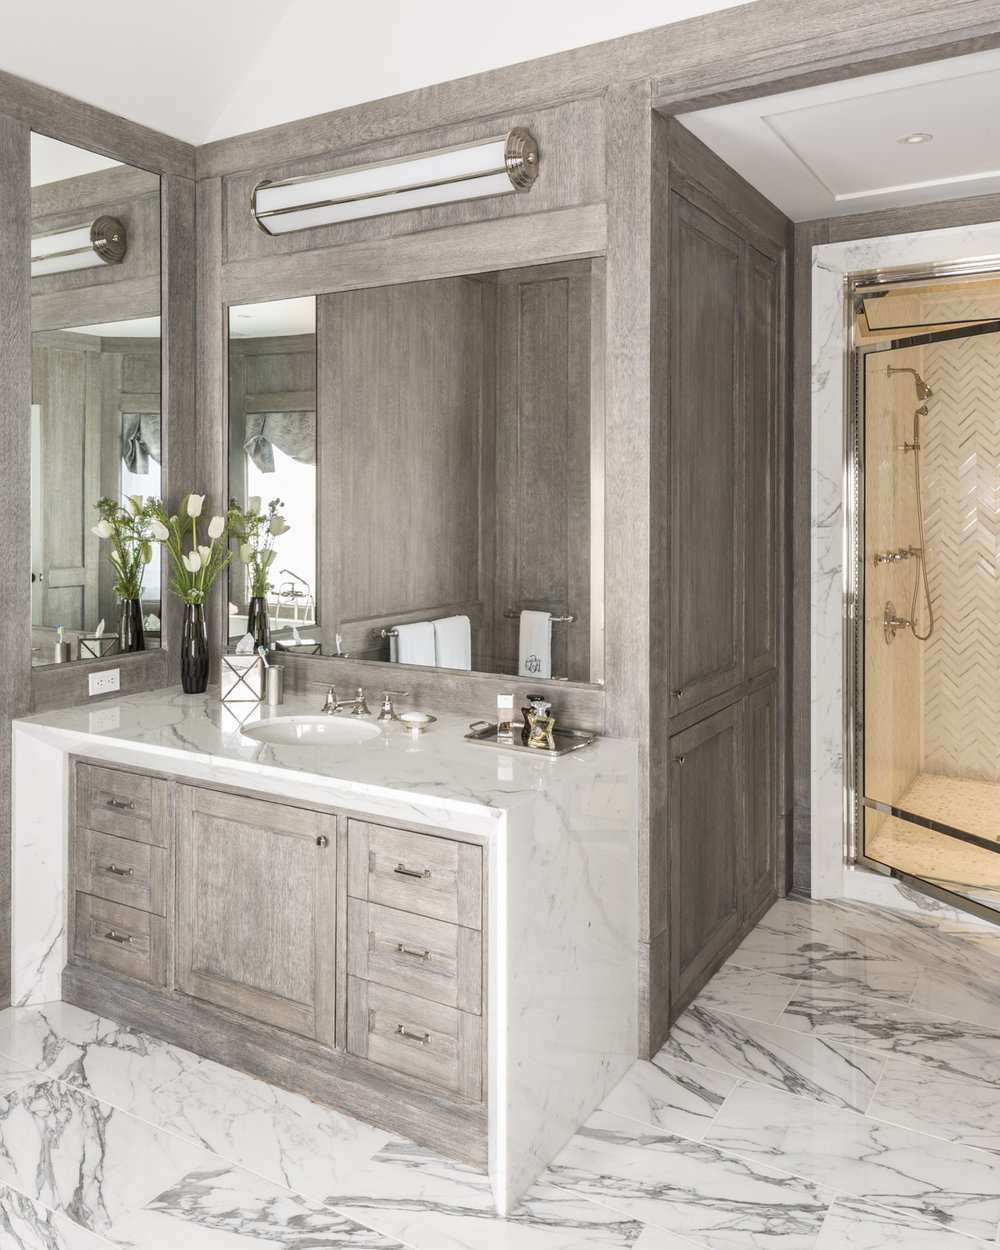 Bathroom-master-marble-old-greenwich-ct-interior-w copy.jpg